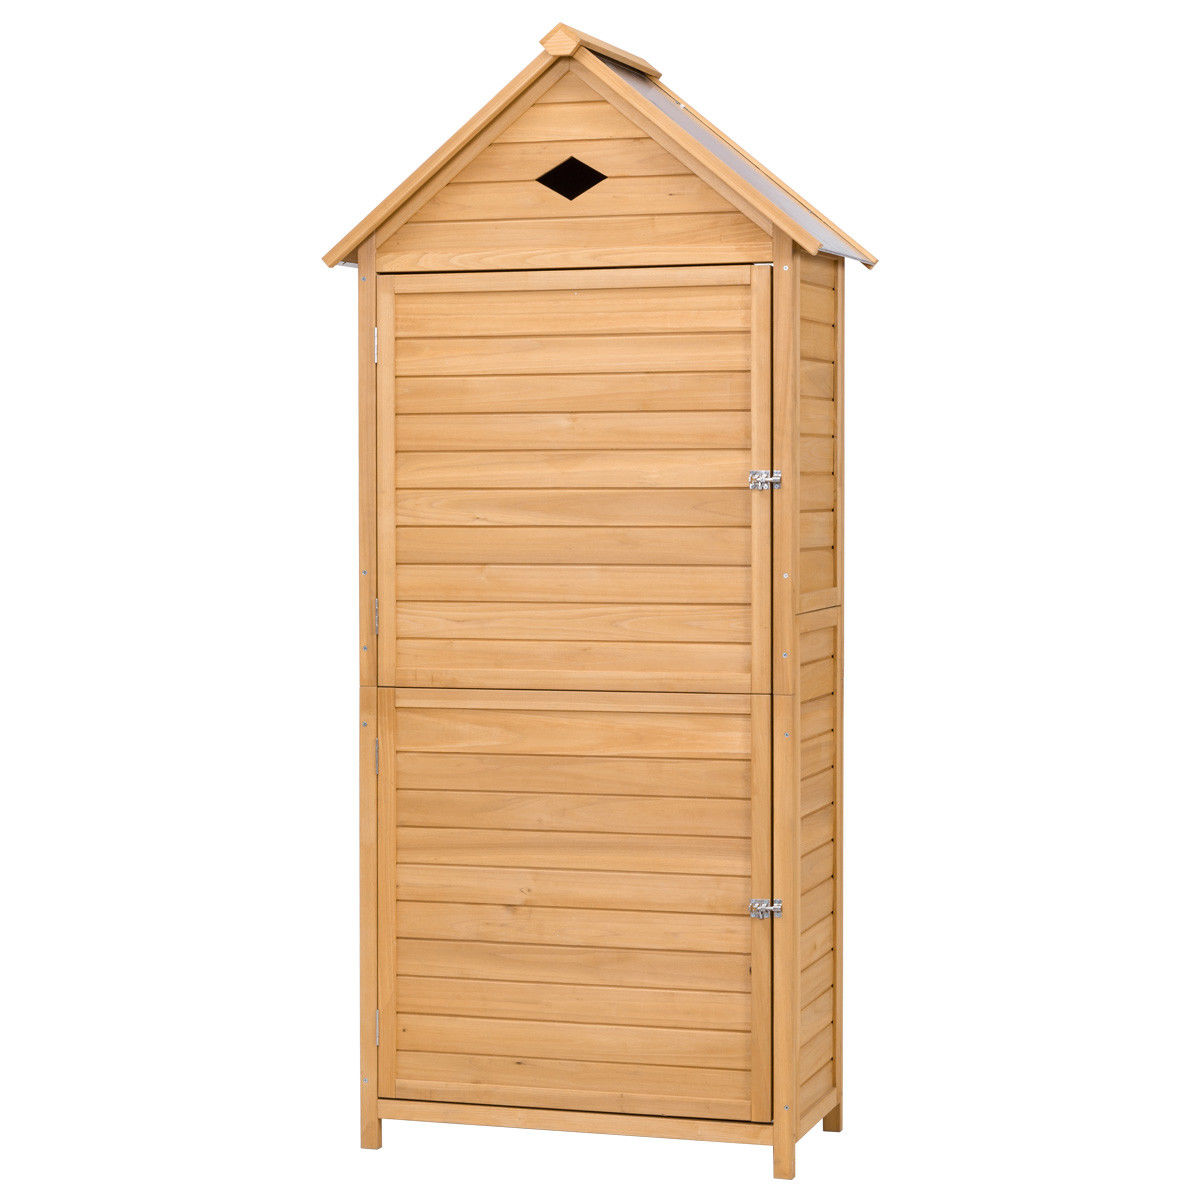 Gymax Wooden Outdoor Garden Storage Shed Storage Hutch Arrow Shed with Single Door